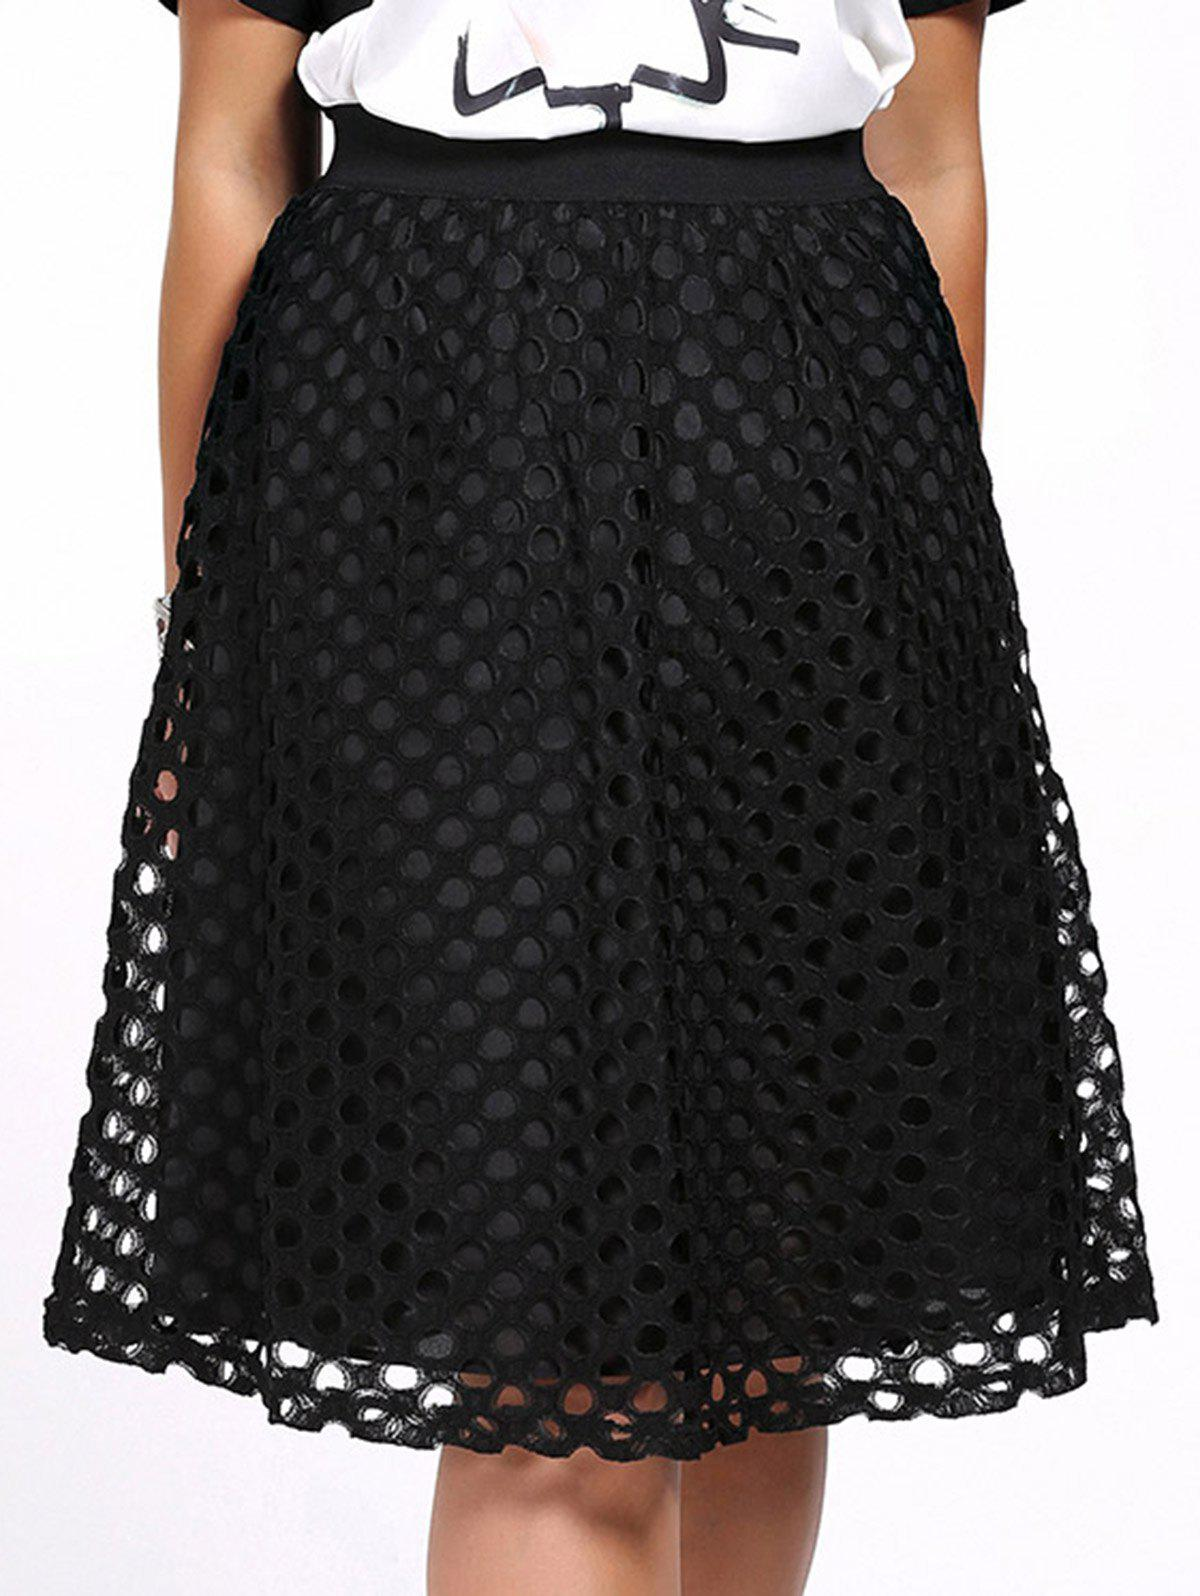 Chic Plus Size Hollow Out Solid Color Women's Skirt - BLACK 5XL